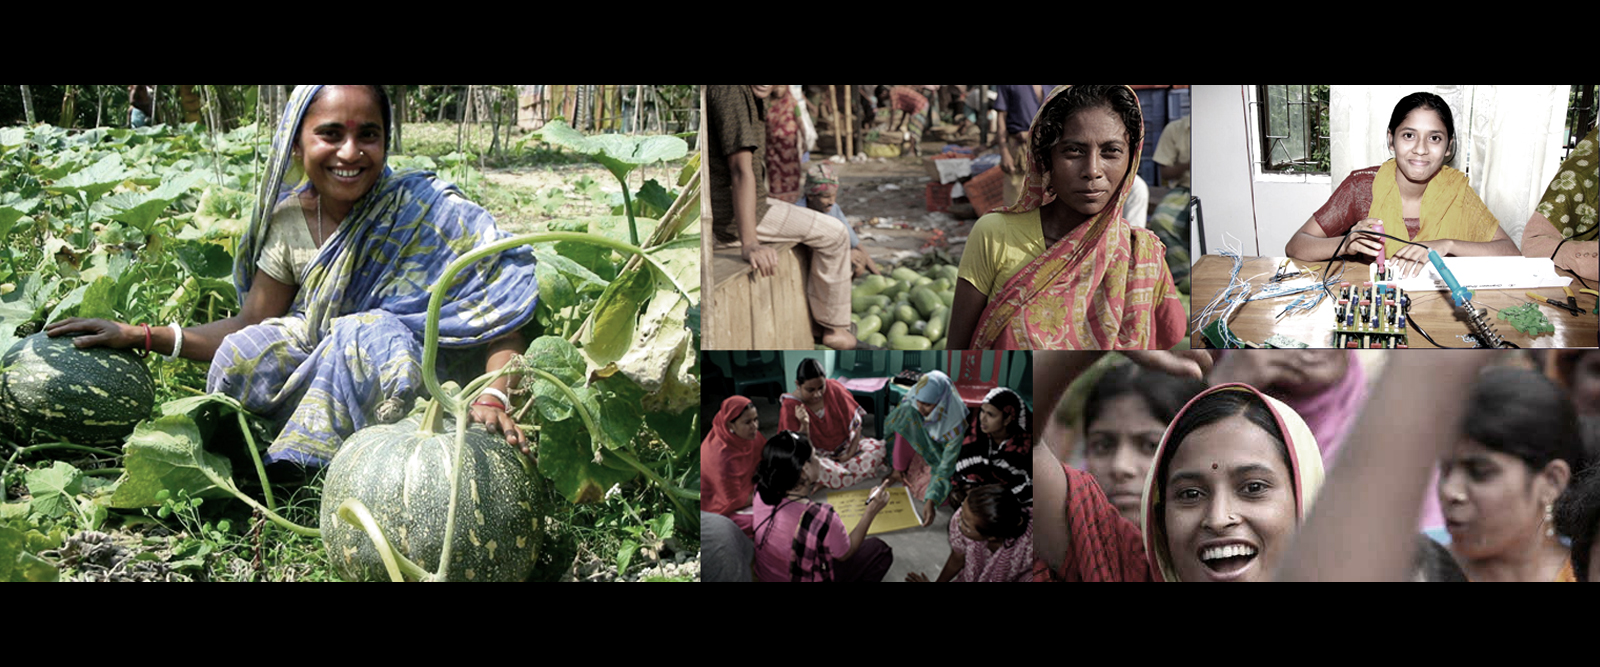 women s contribution in the development of bangladesh Report no 68 women's contribution to rural economic activities: making the invisible visible centre for policy dialogue (cpd) house 40/c, road 11, dhanmondi r/a, gpo box 2129, dhaka 1209, bangladesh.